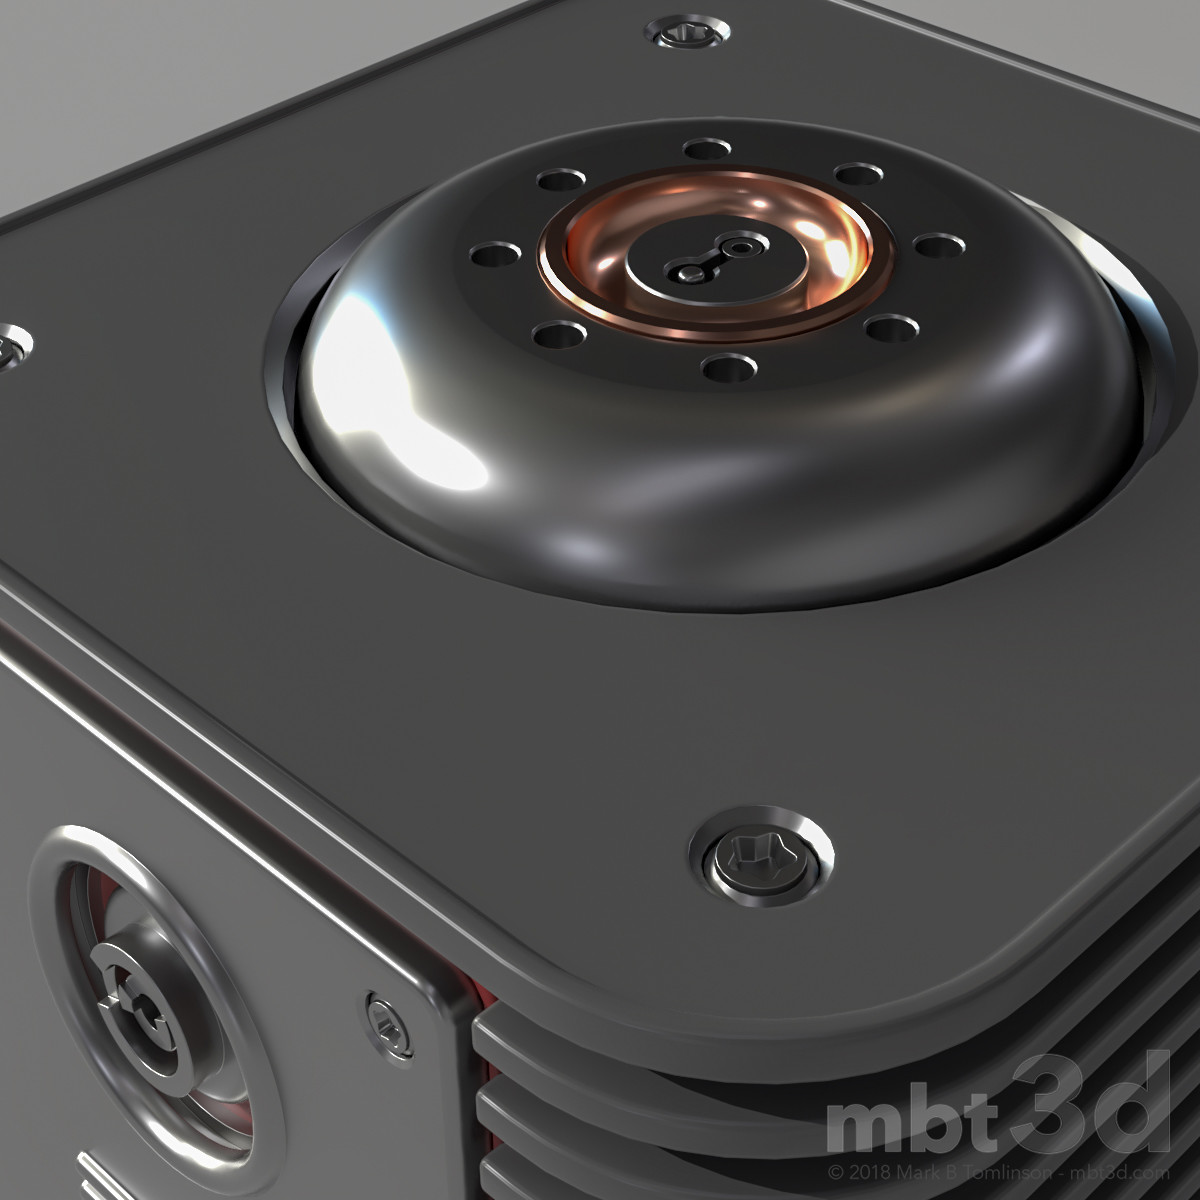 Box X: Top Close up.